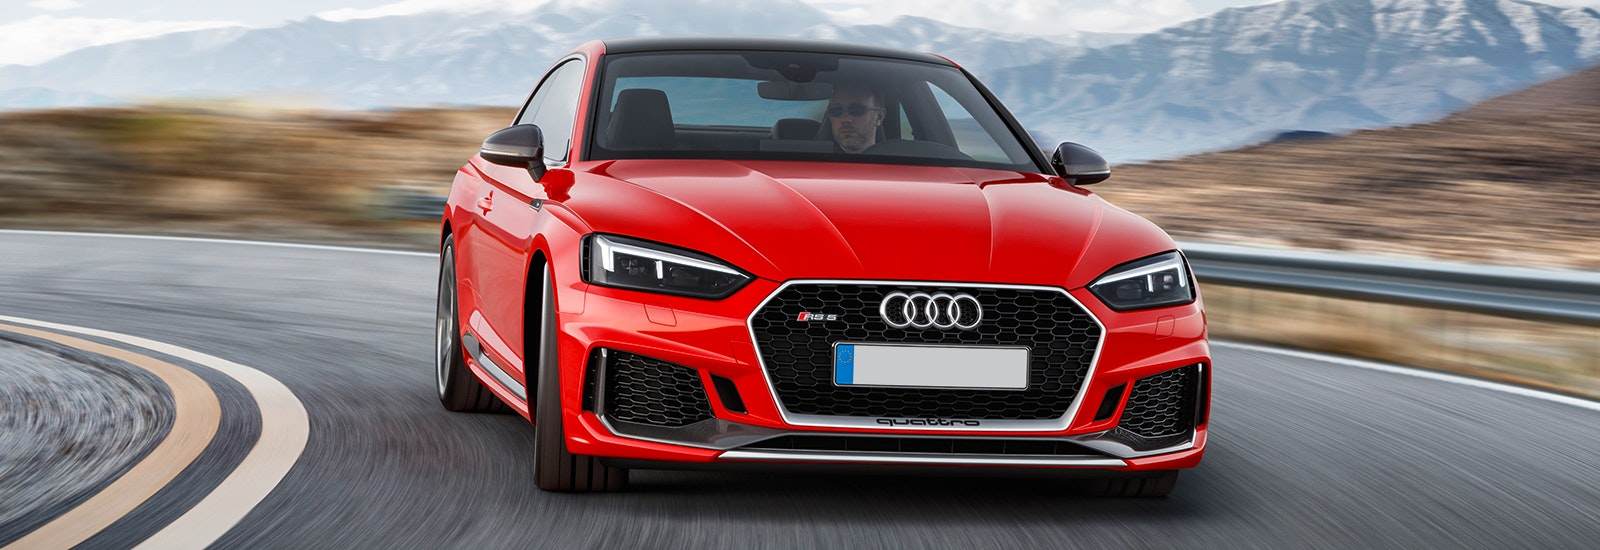 2018 audi rs5 price, specs and release date | carwow